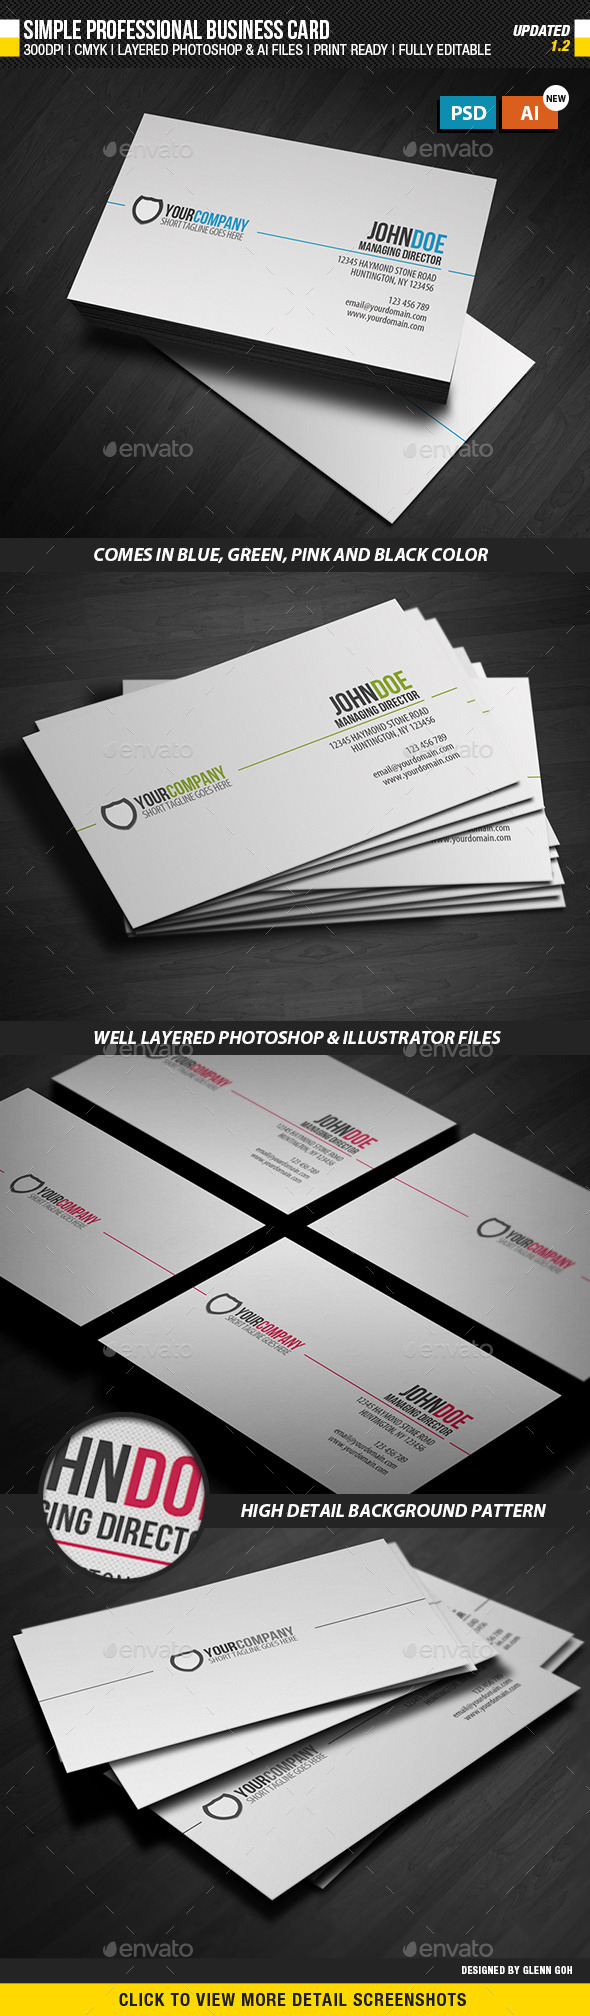 Simple Professional Business Card by glenngoh | GraphicRiver